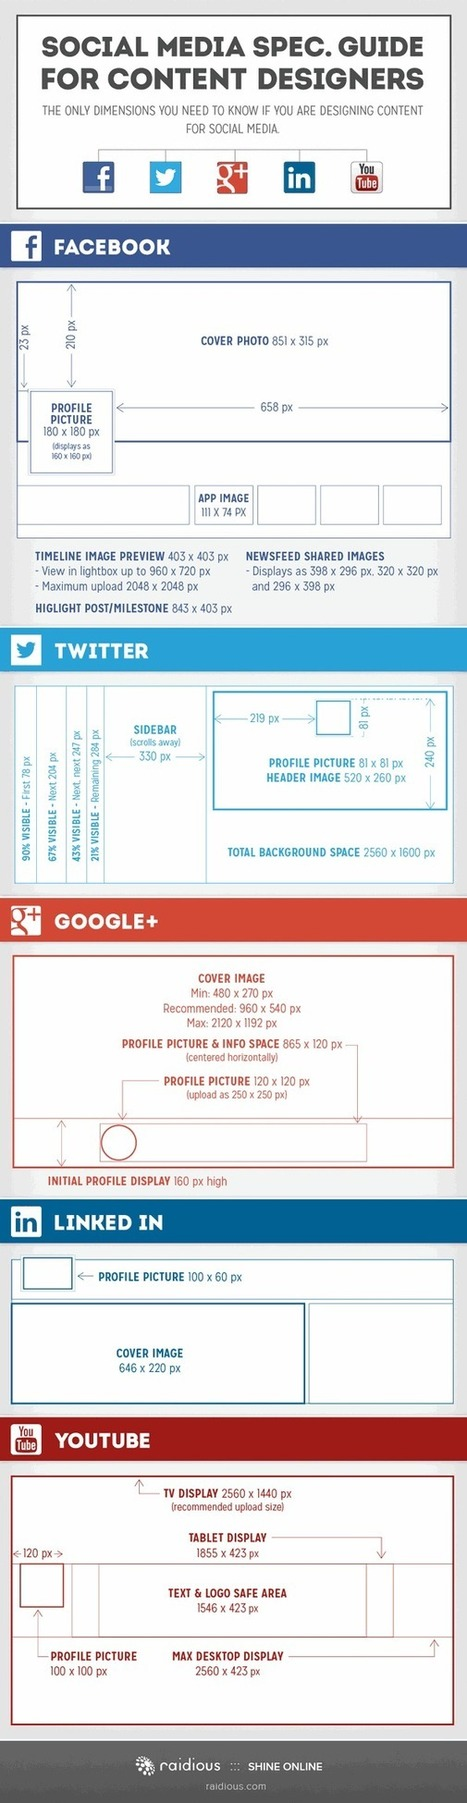 Social Media Sizing Guide for Designers and Marketers (Infographic) | small business | Scoop.it